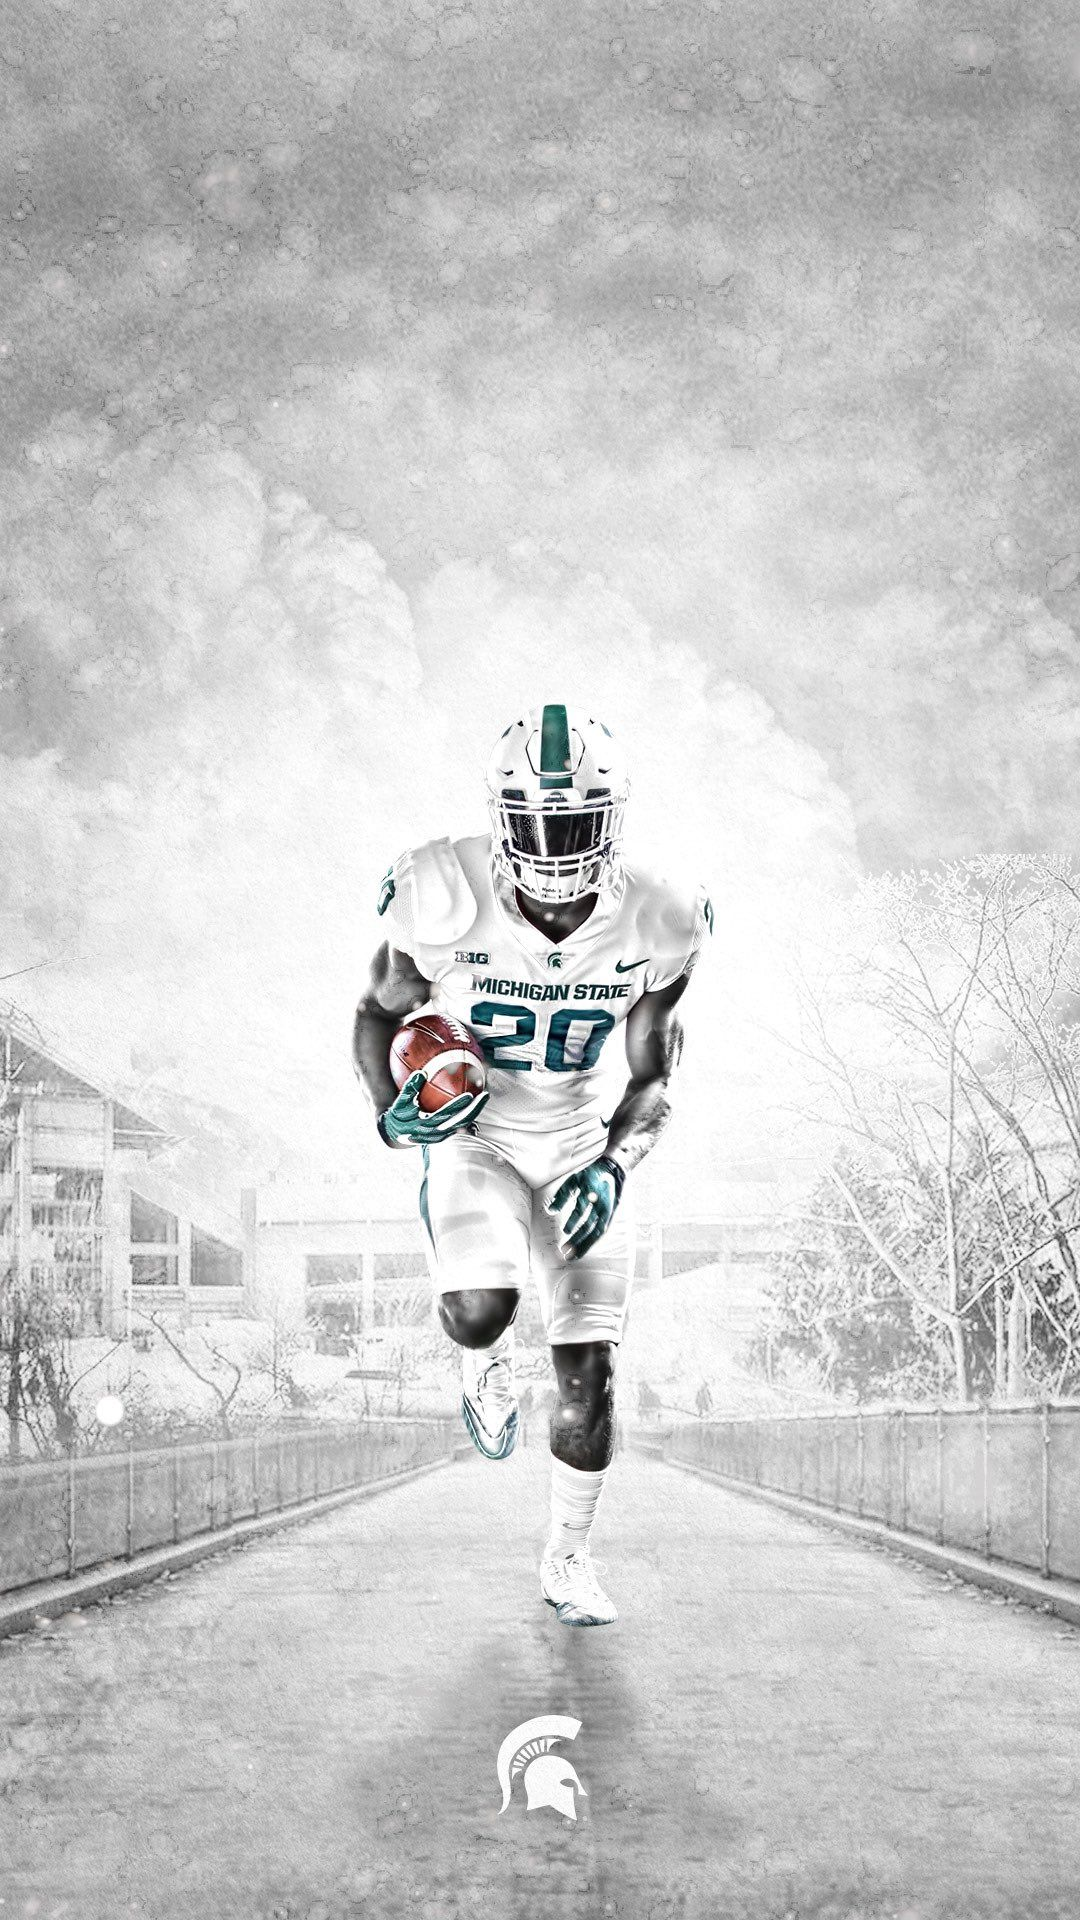 Michigan State In 2020 Sports Graphic Design Sports Photography Sports Design